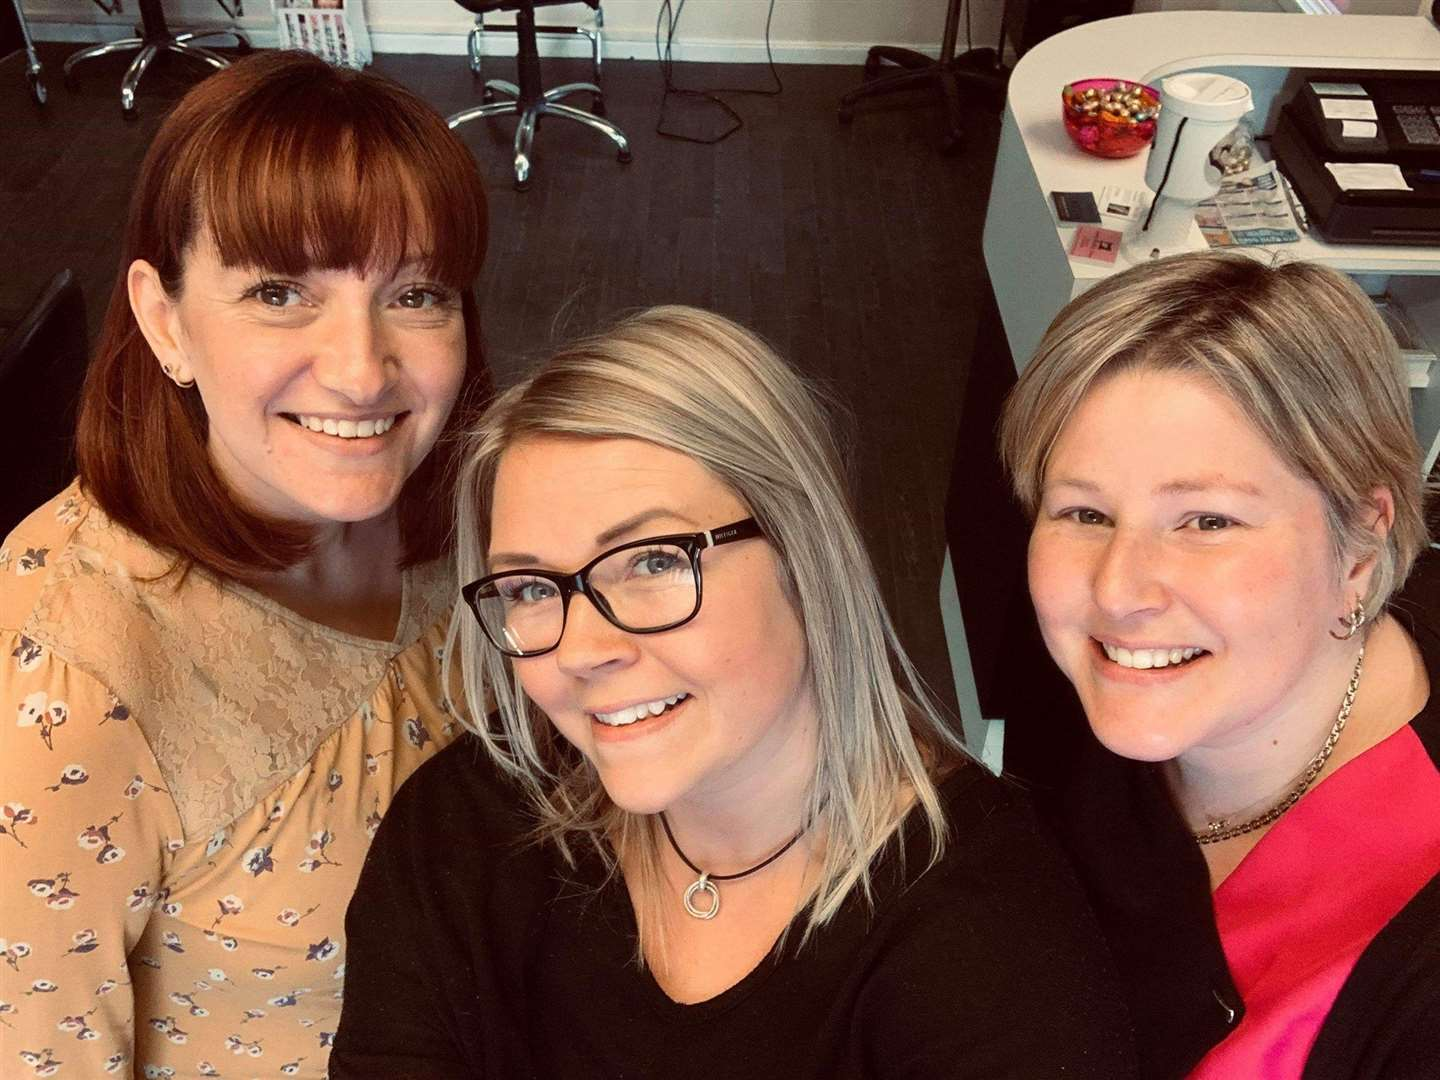 Flix Hair Design of Fakenham colleagues Sarah Hewitt, Donna Fuller and Emma Beaumont who are raising funds for King's Lynn's Queen Elizabeth Hospital's stroke unit. Picture: SUBMITTED. (8113431)